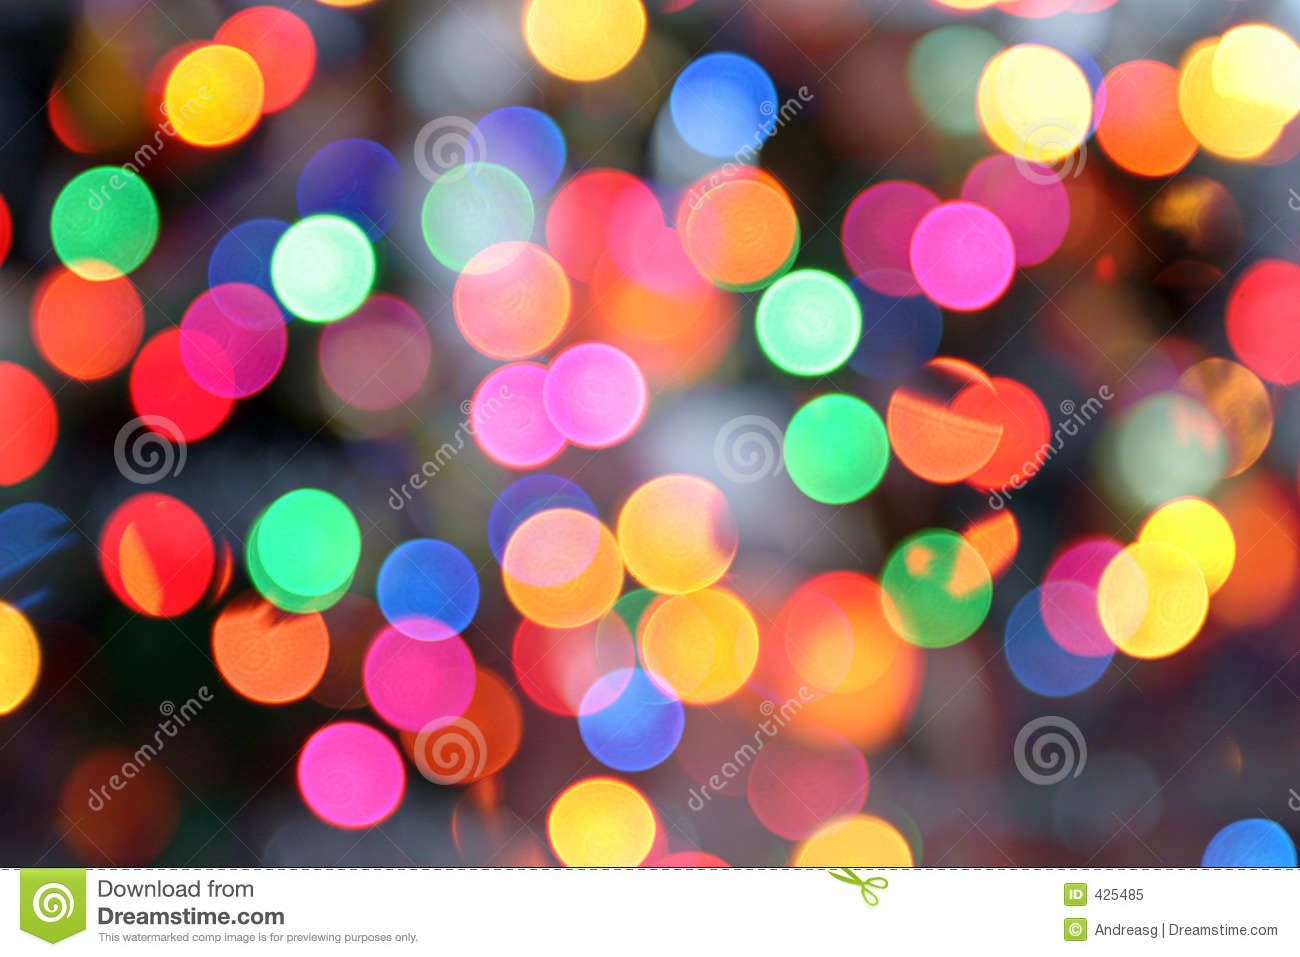 Disco Lights Royalty Free Stock Photo - Image: 425485